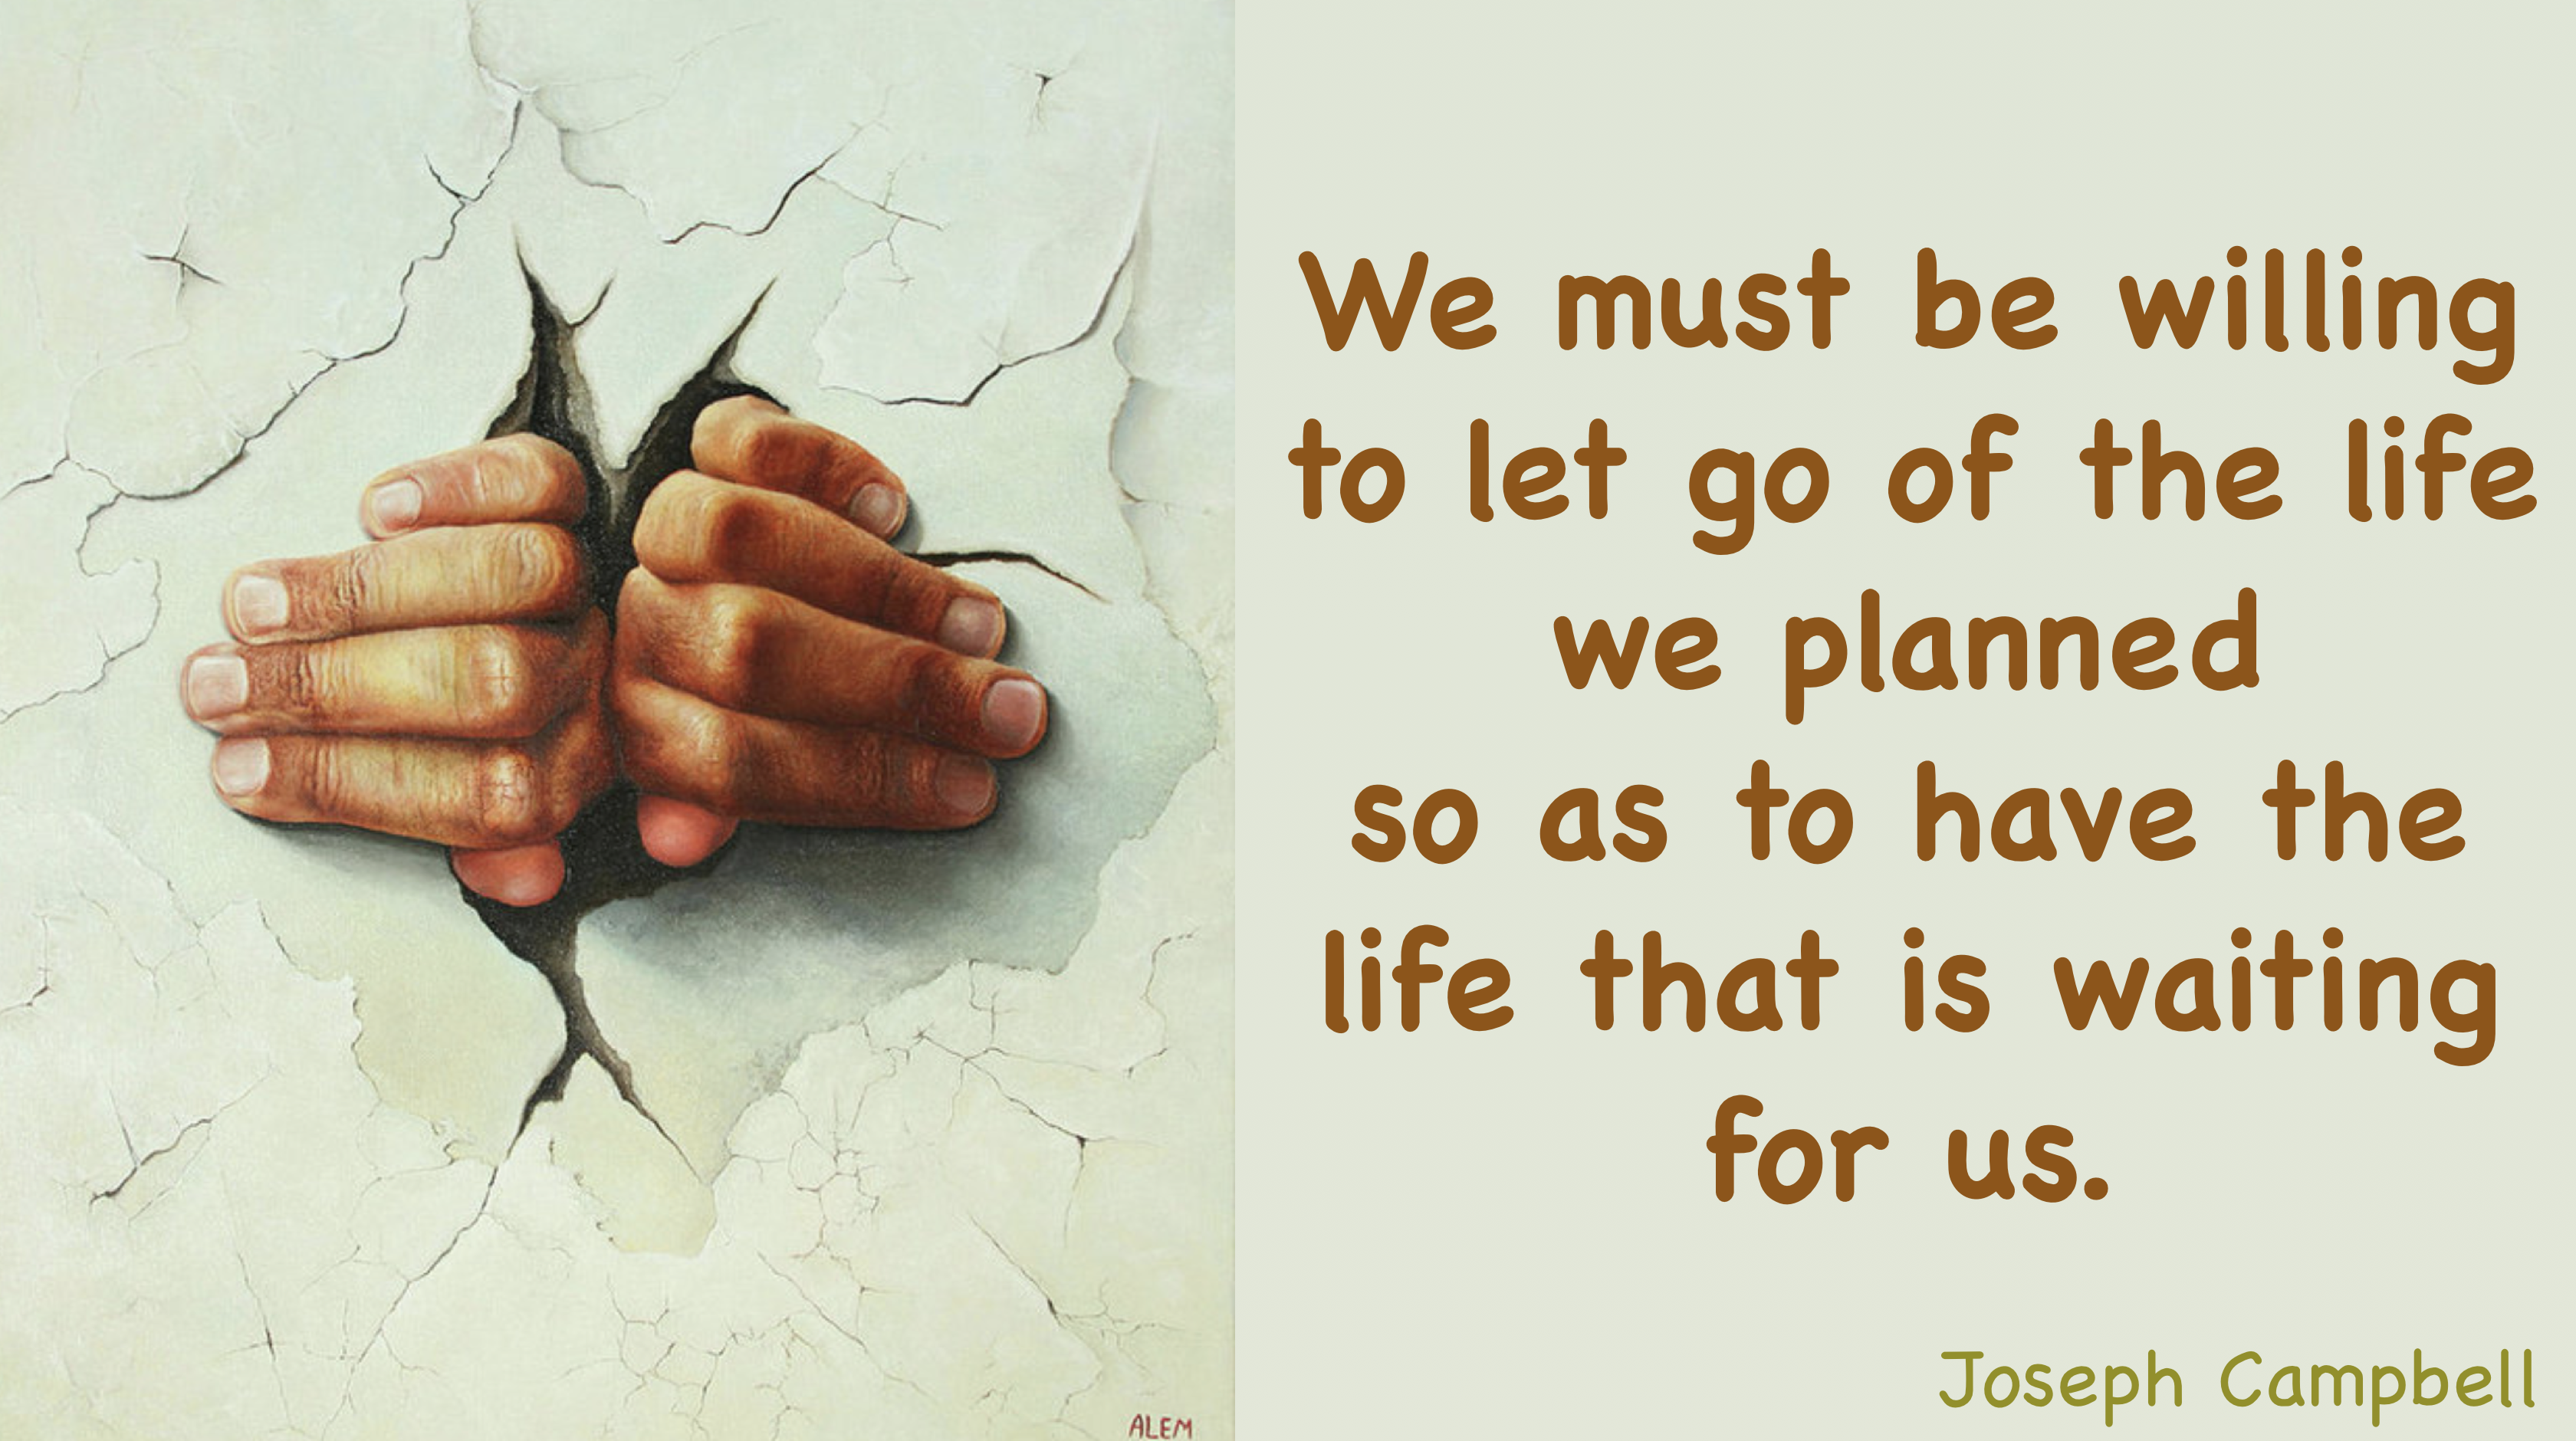 """We must be willing to let go of the life we planned so as to have the life that is waiting for us."" Joseph Campbell [3360 × 1880] [OC]"